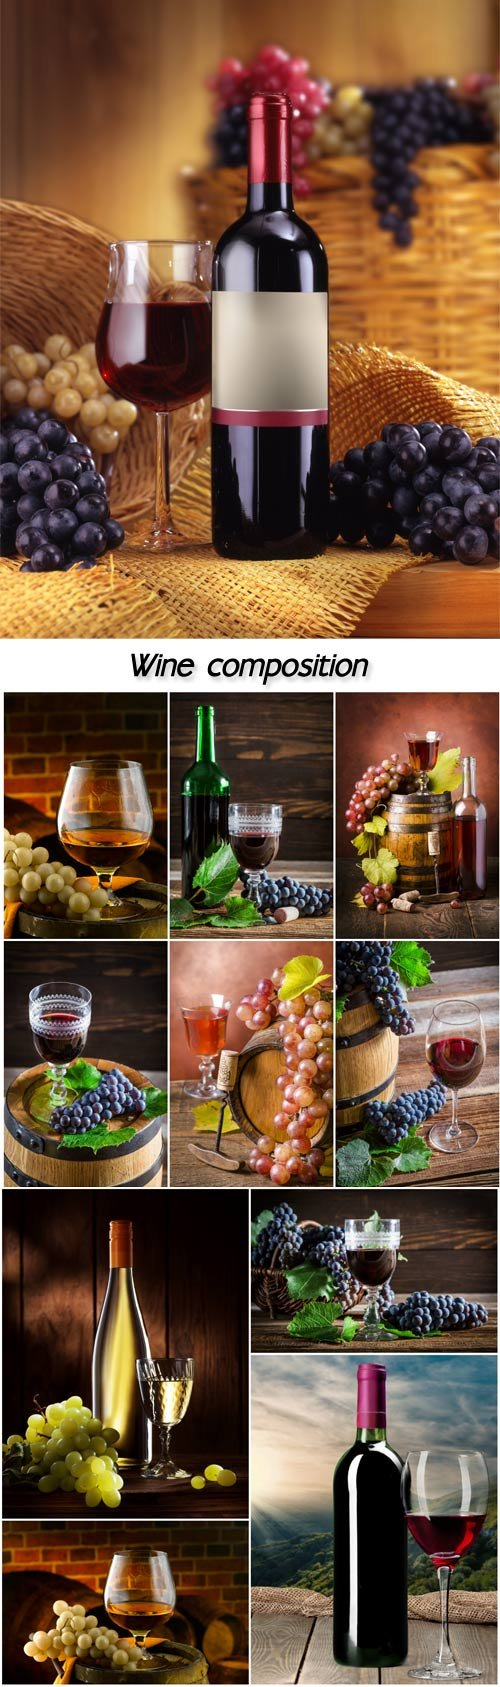 Wine, composition from wine bottles and grapes